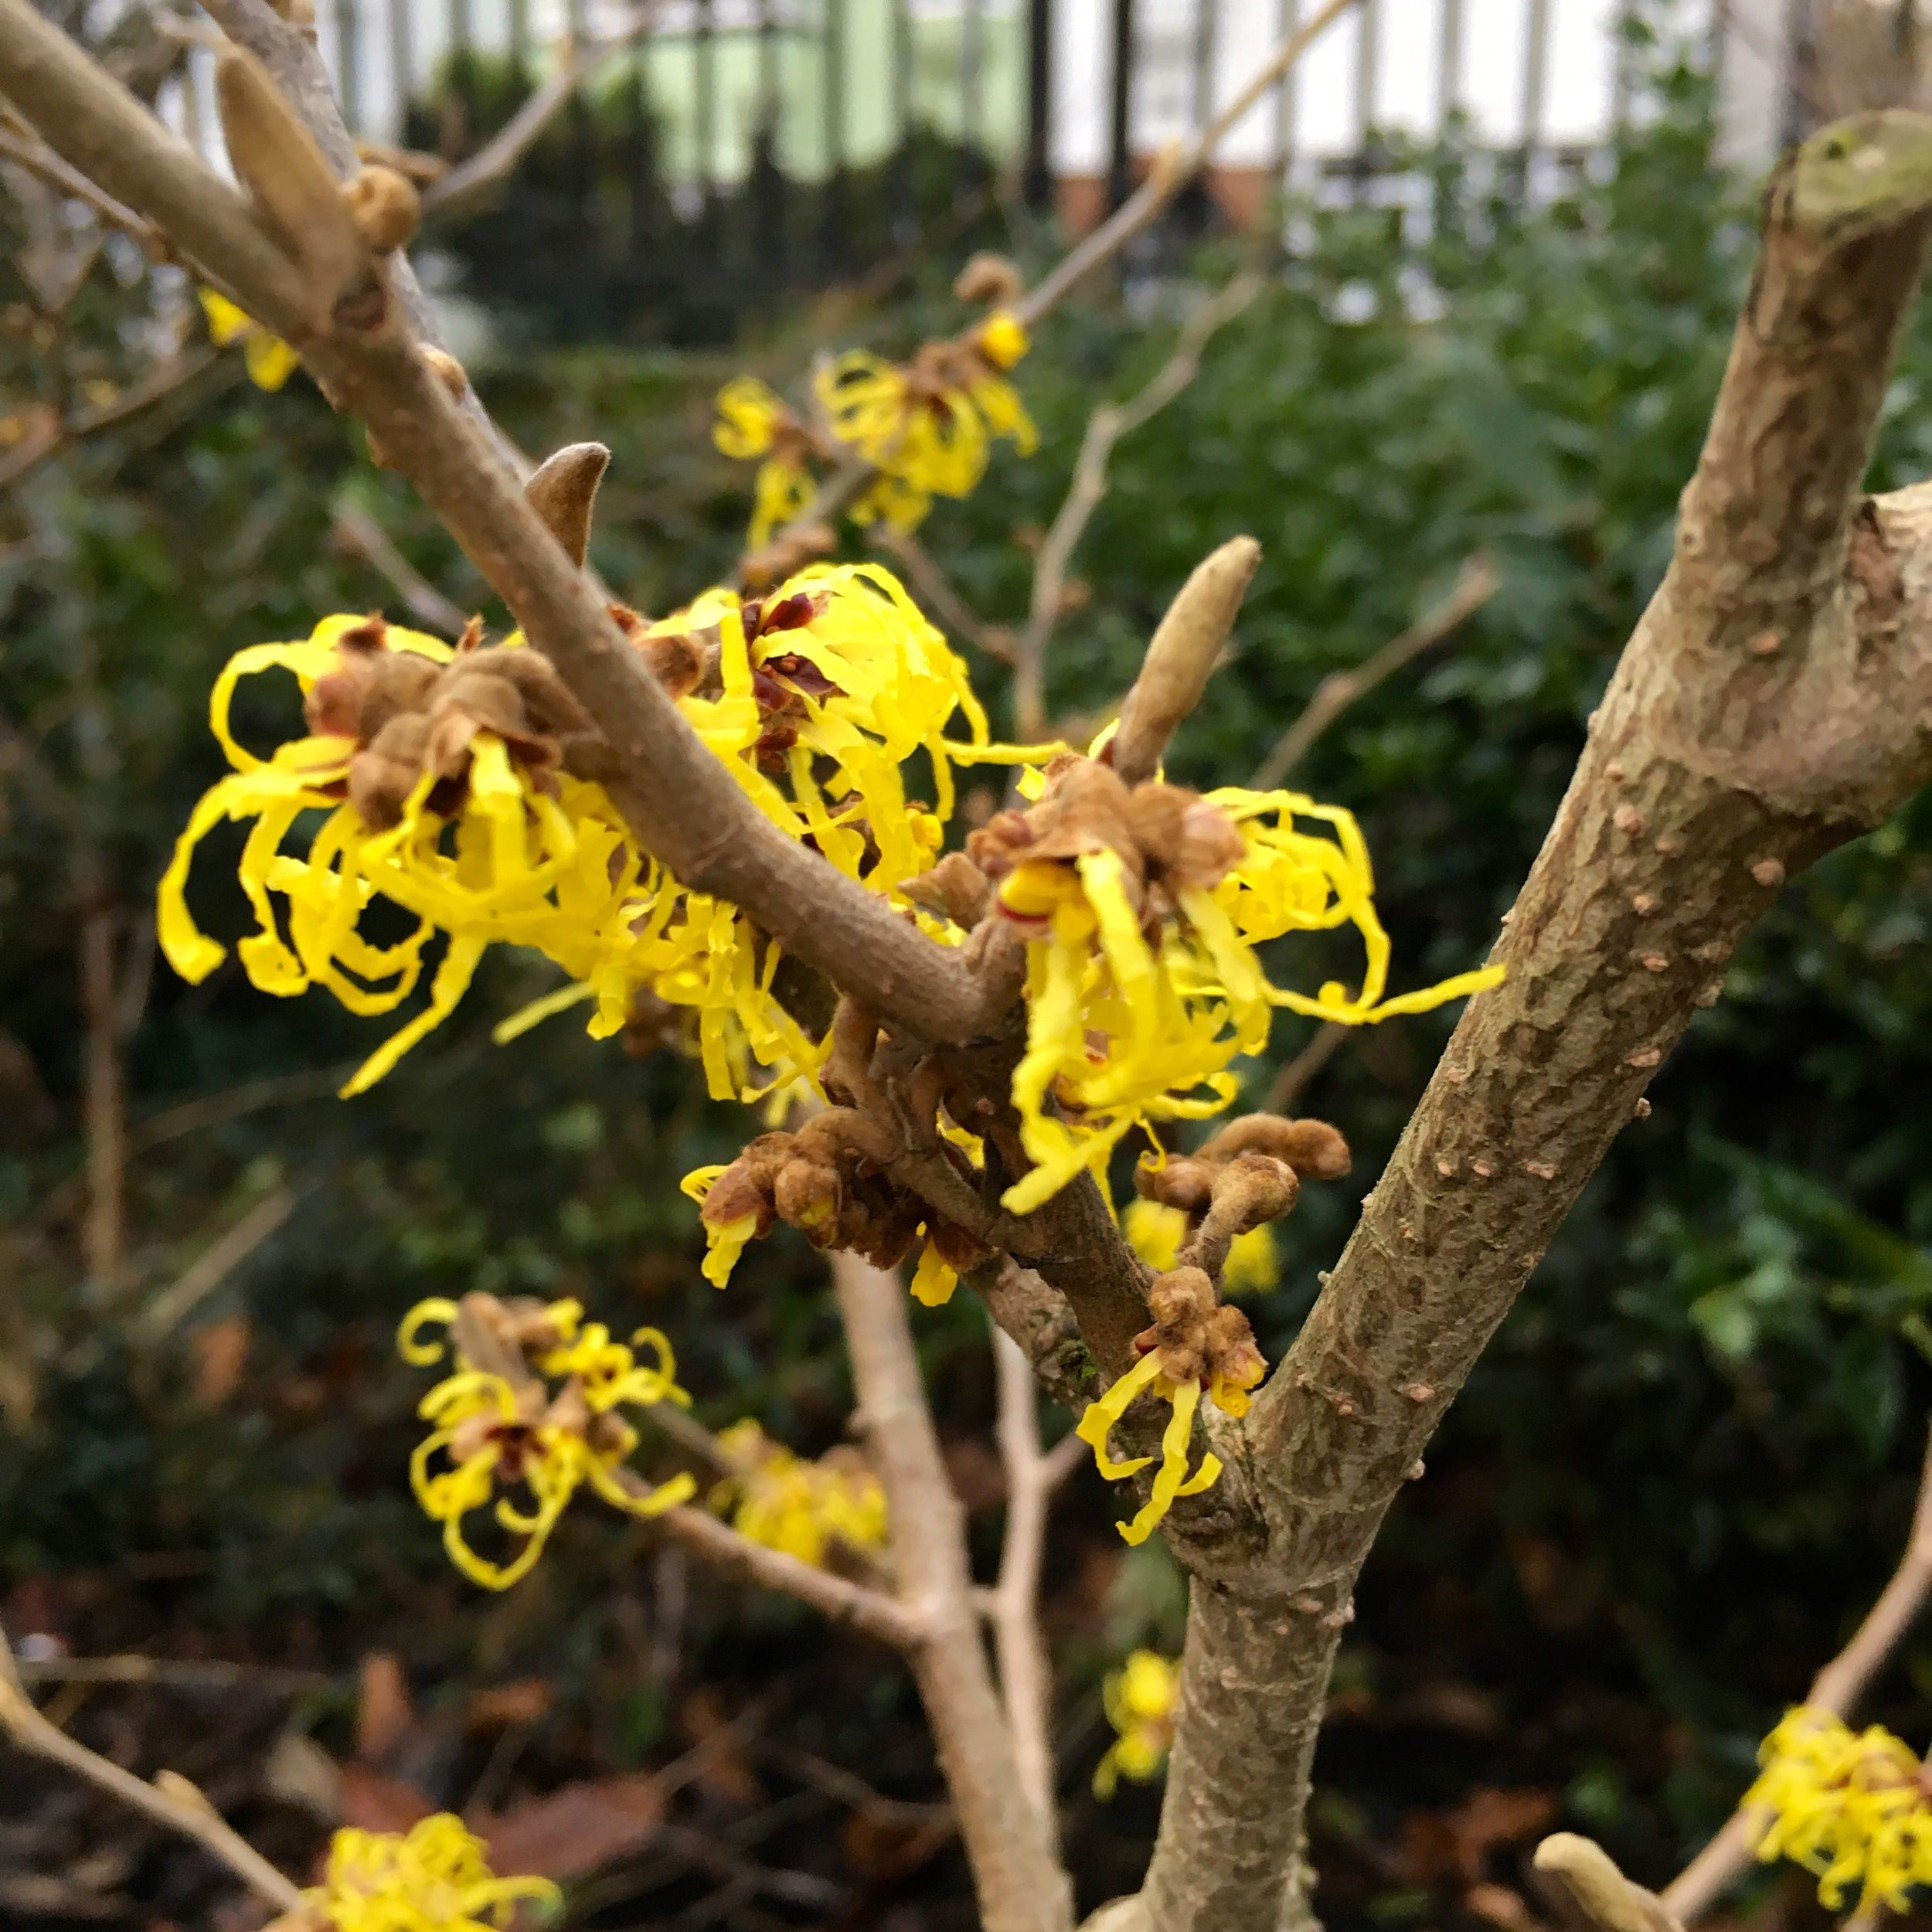 Another new discovery, witch hazel in flower in Greenwich Park, bringing a welcome blast of yellow